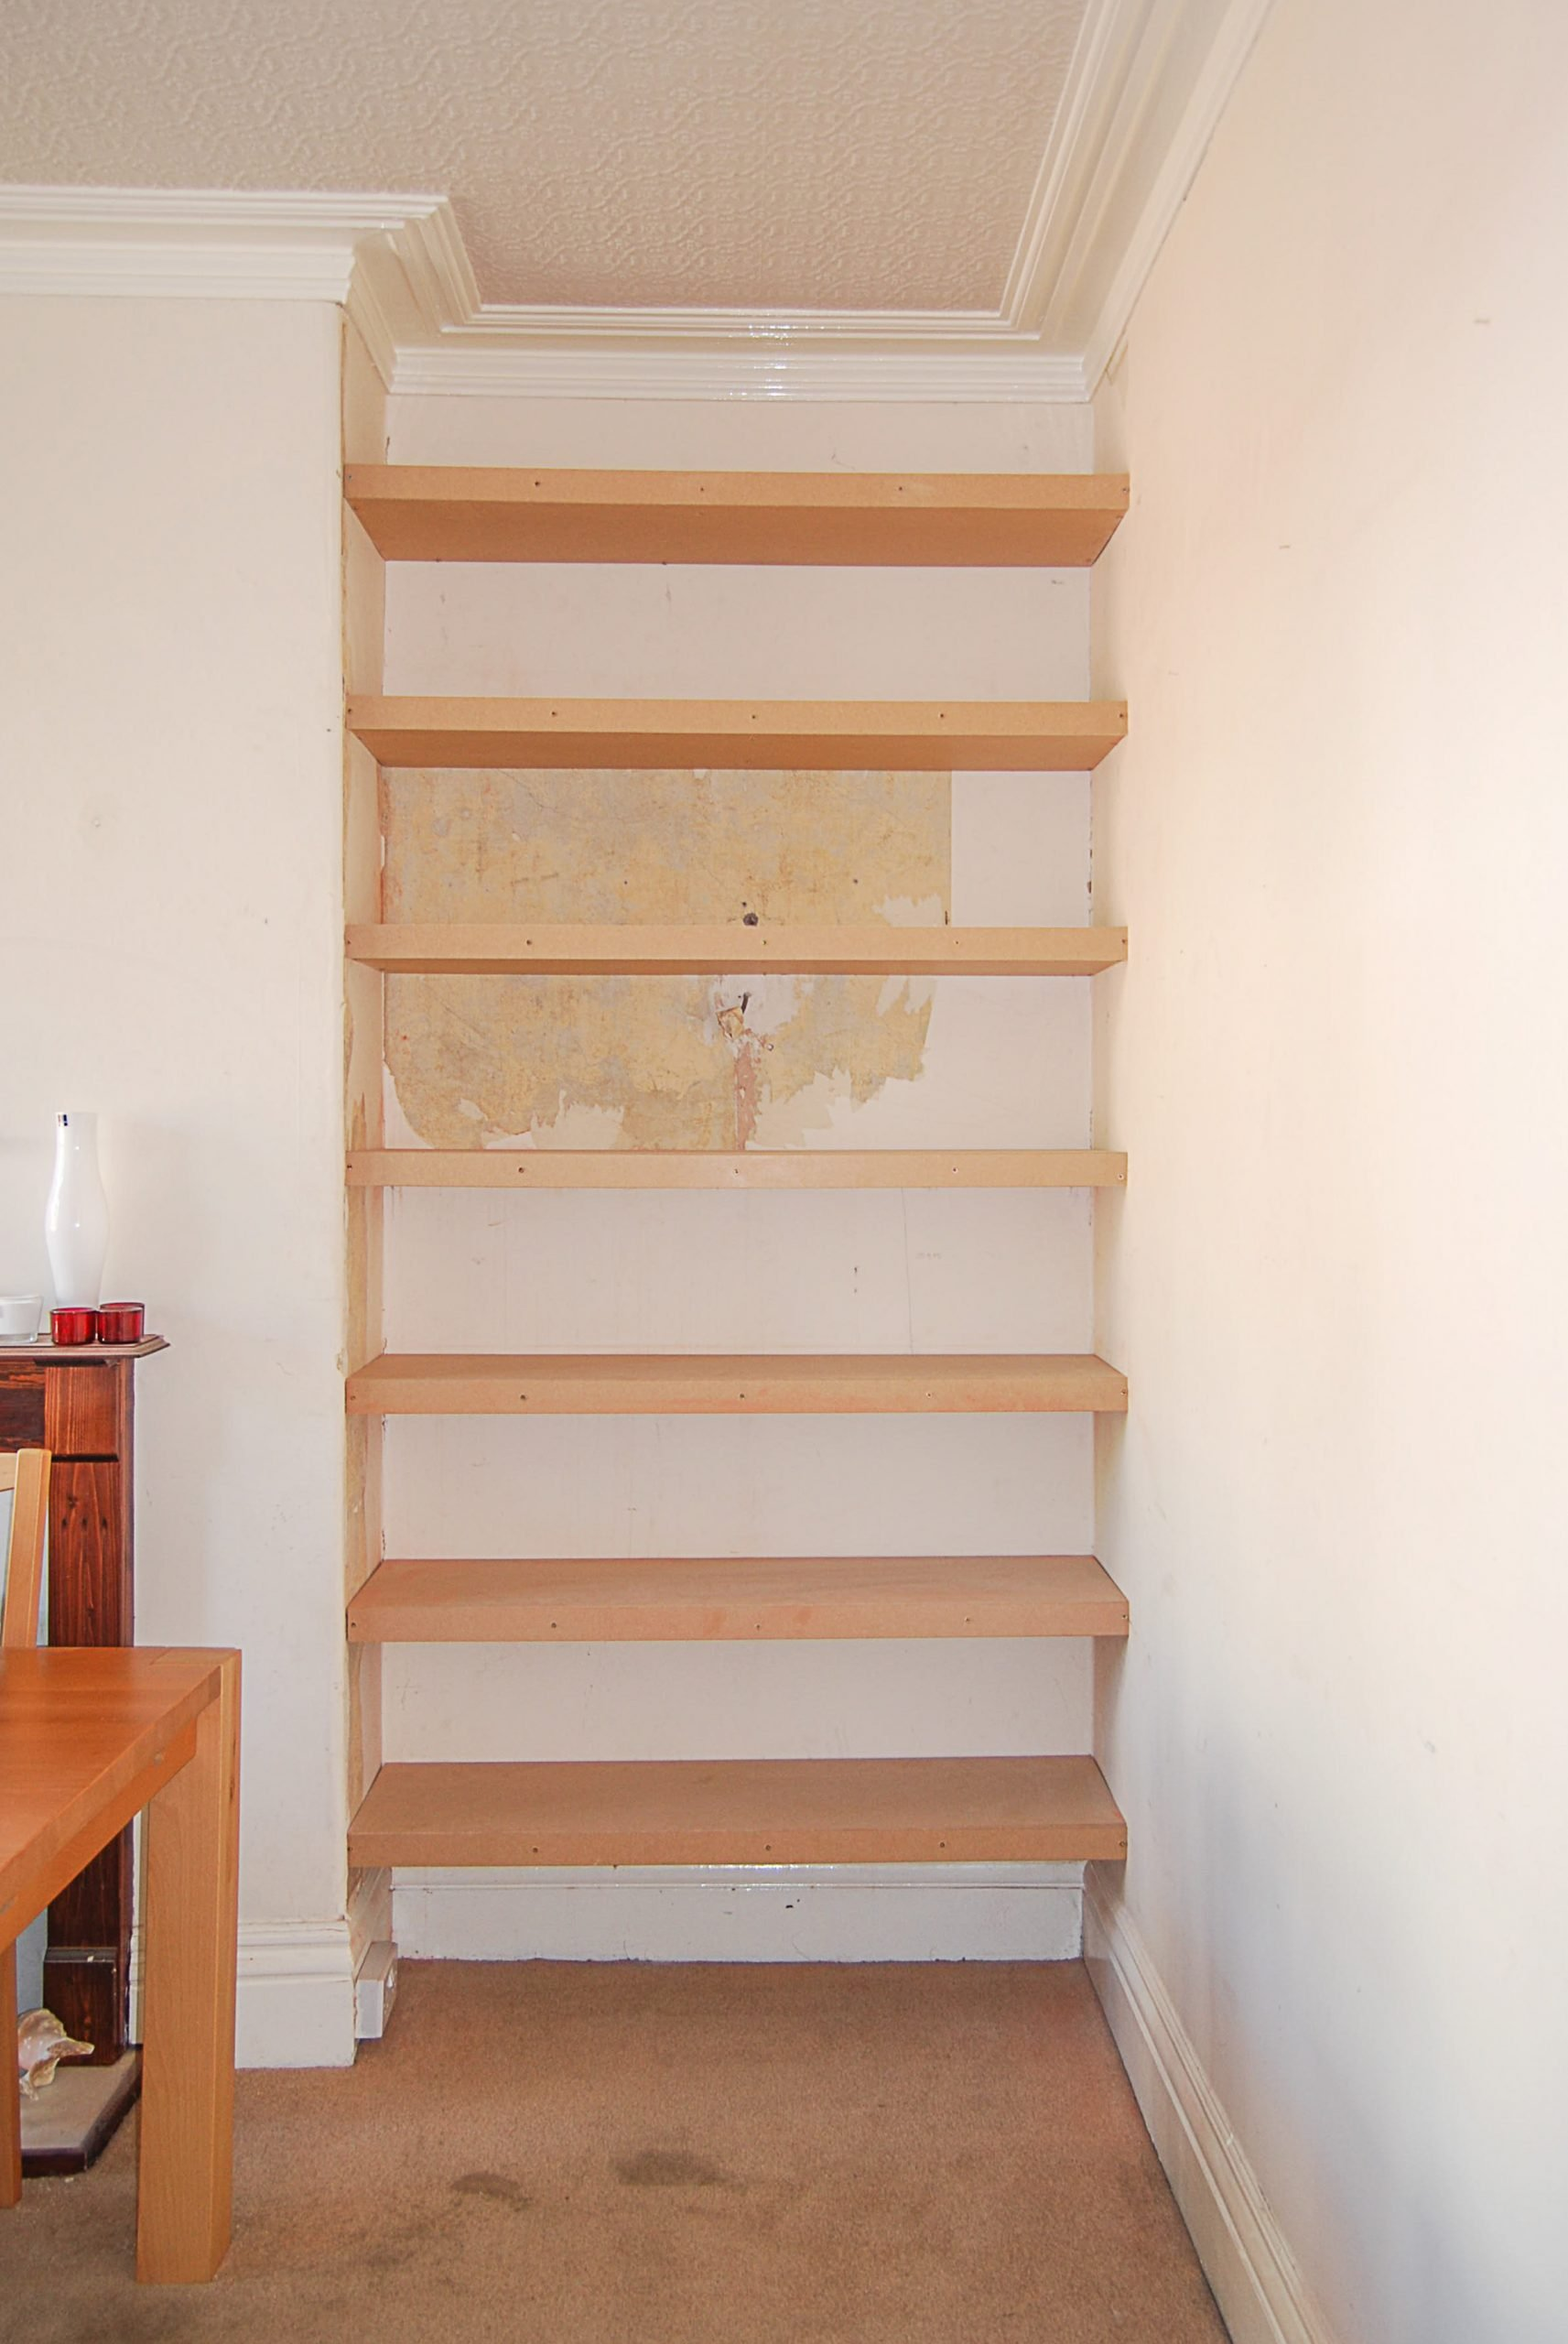 5 Easy Ways To Build Floating Shelves Yourself (without ...